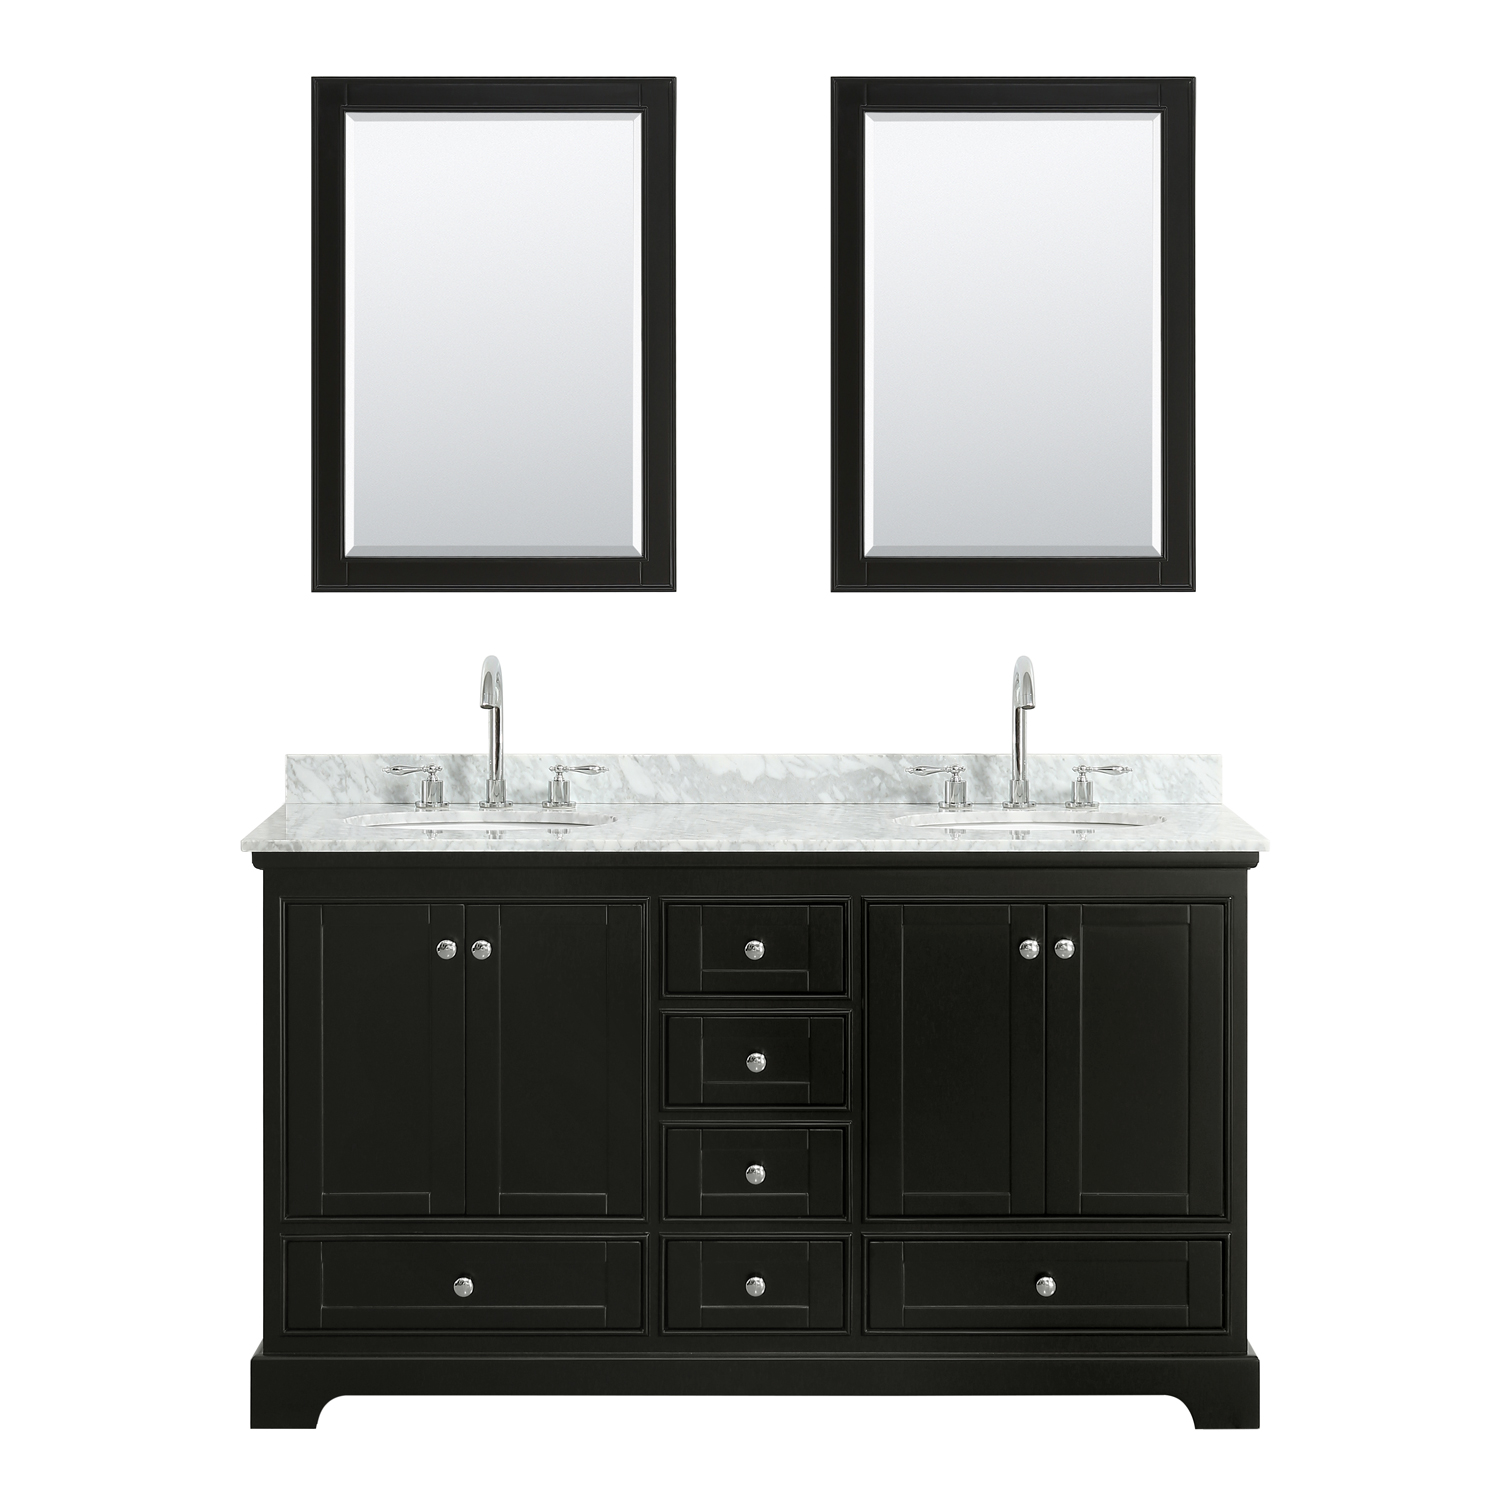 """60"""" Double Bathroom Vanity in White Carrara Marble Countertop with Undermount Porcelain Sinks, Medicine Cabinet, Mirror and Color Options"""